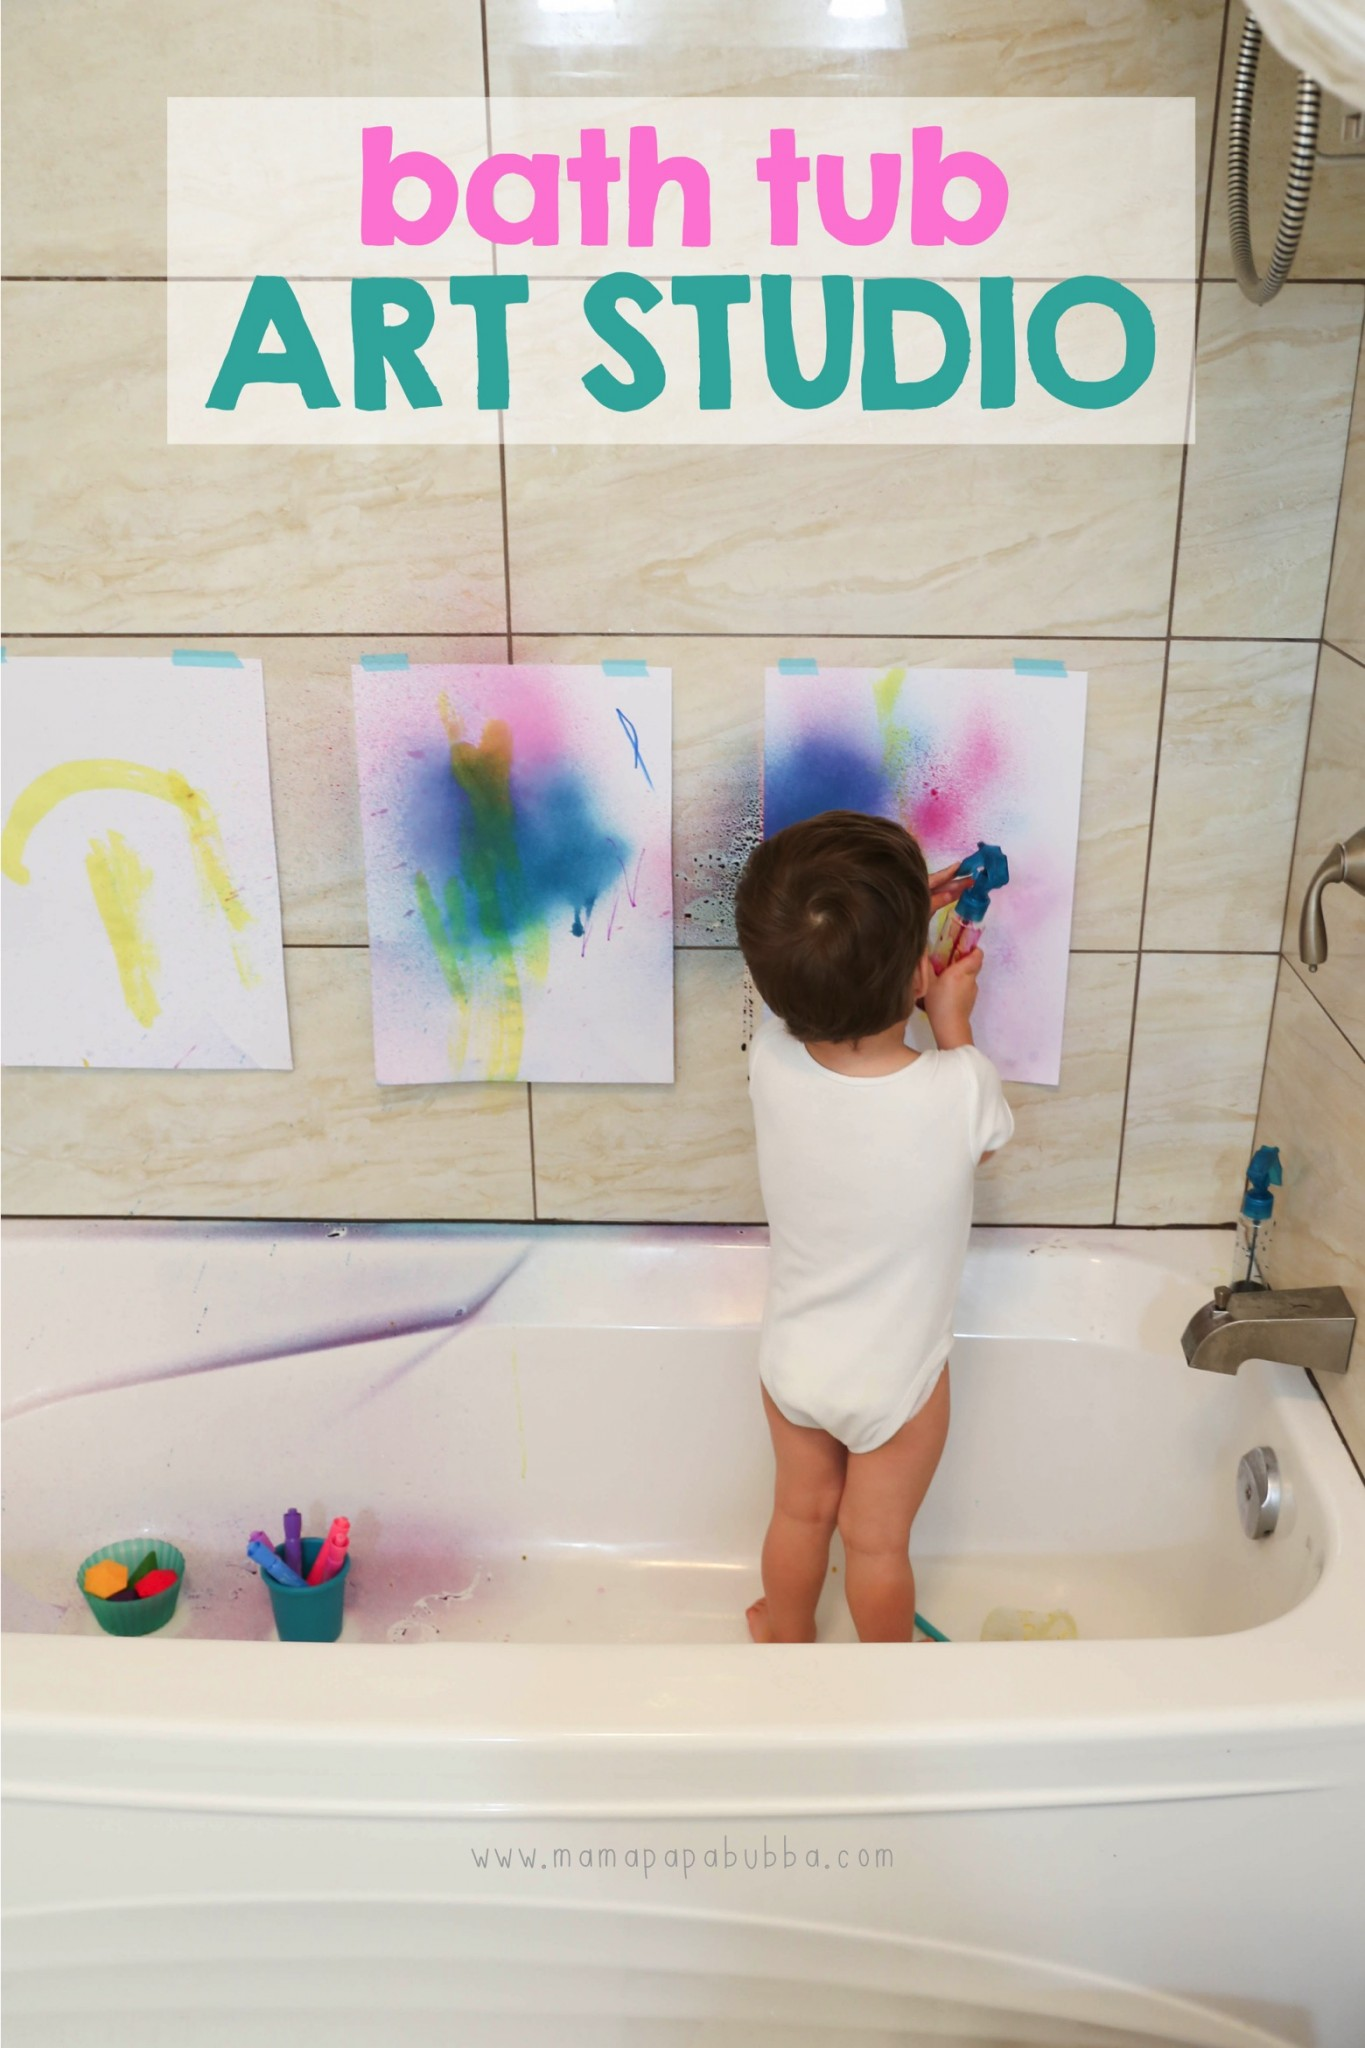 Bath Tub Art Studio | Mama Papa Bubba